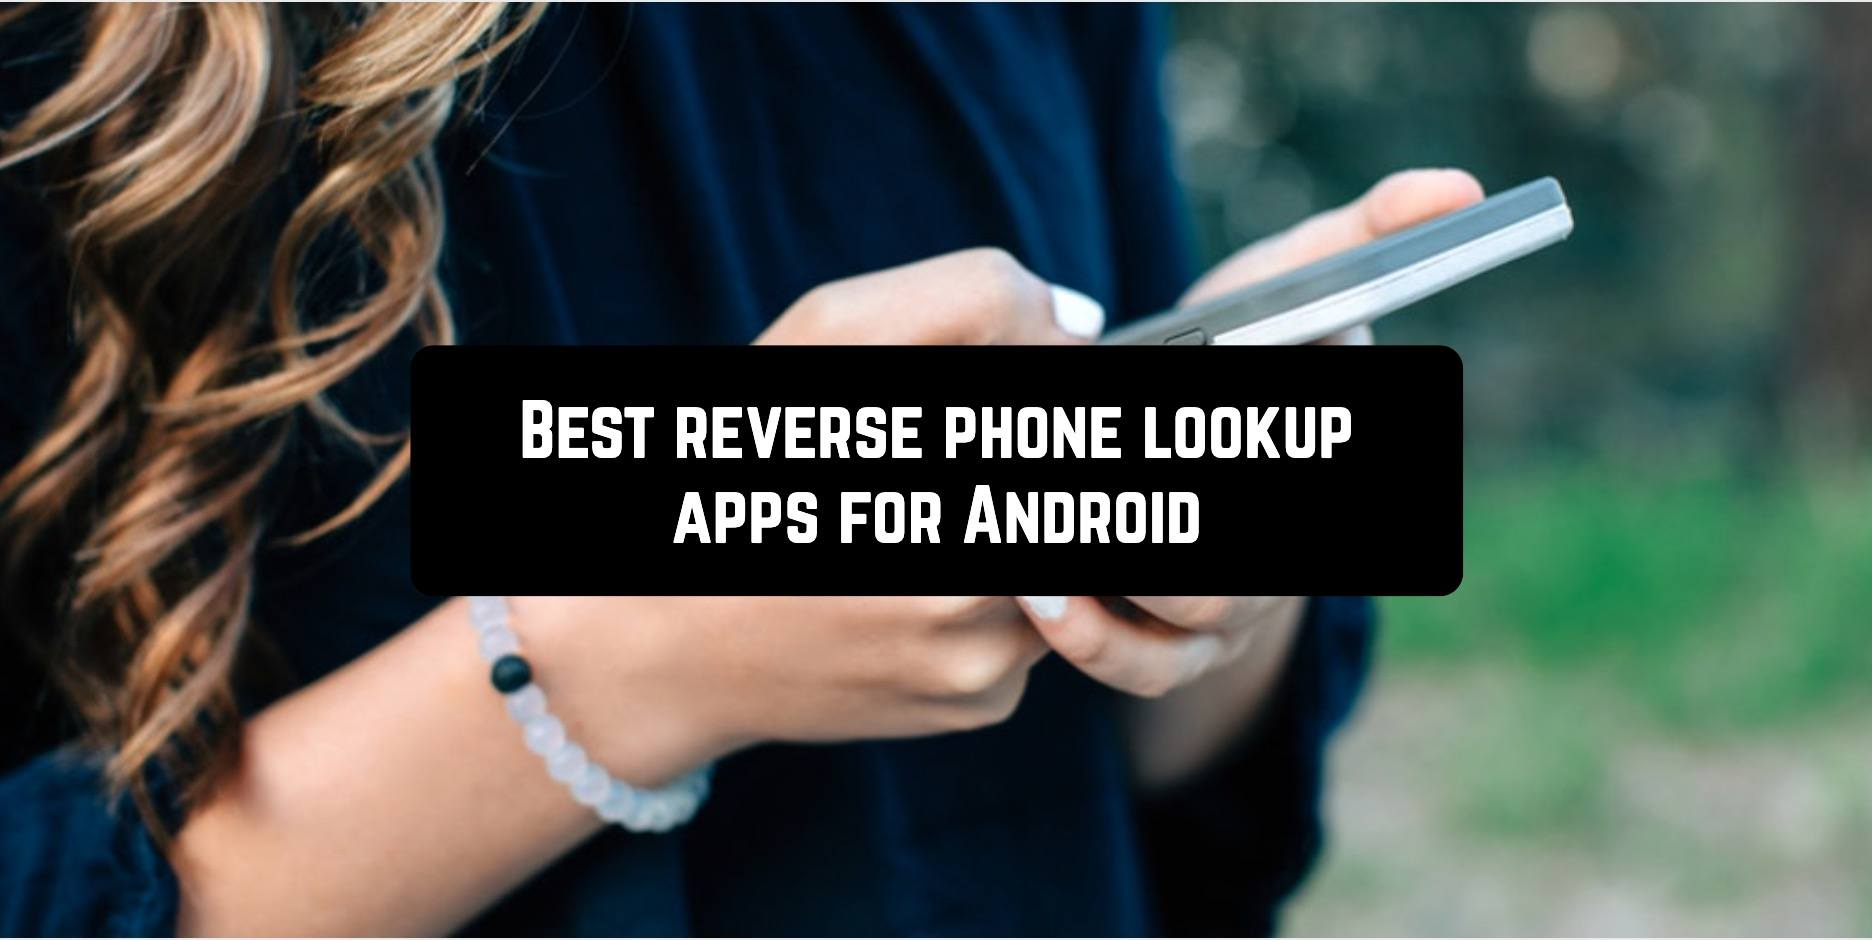 5 Best Free Reverse Phone Lookup Services